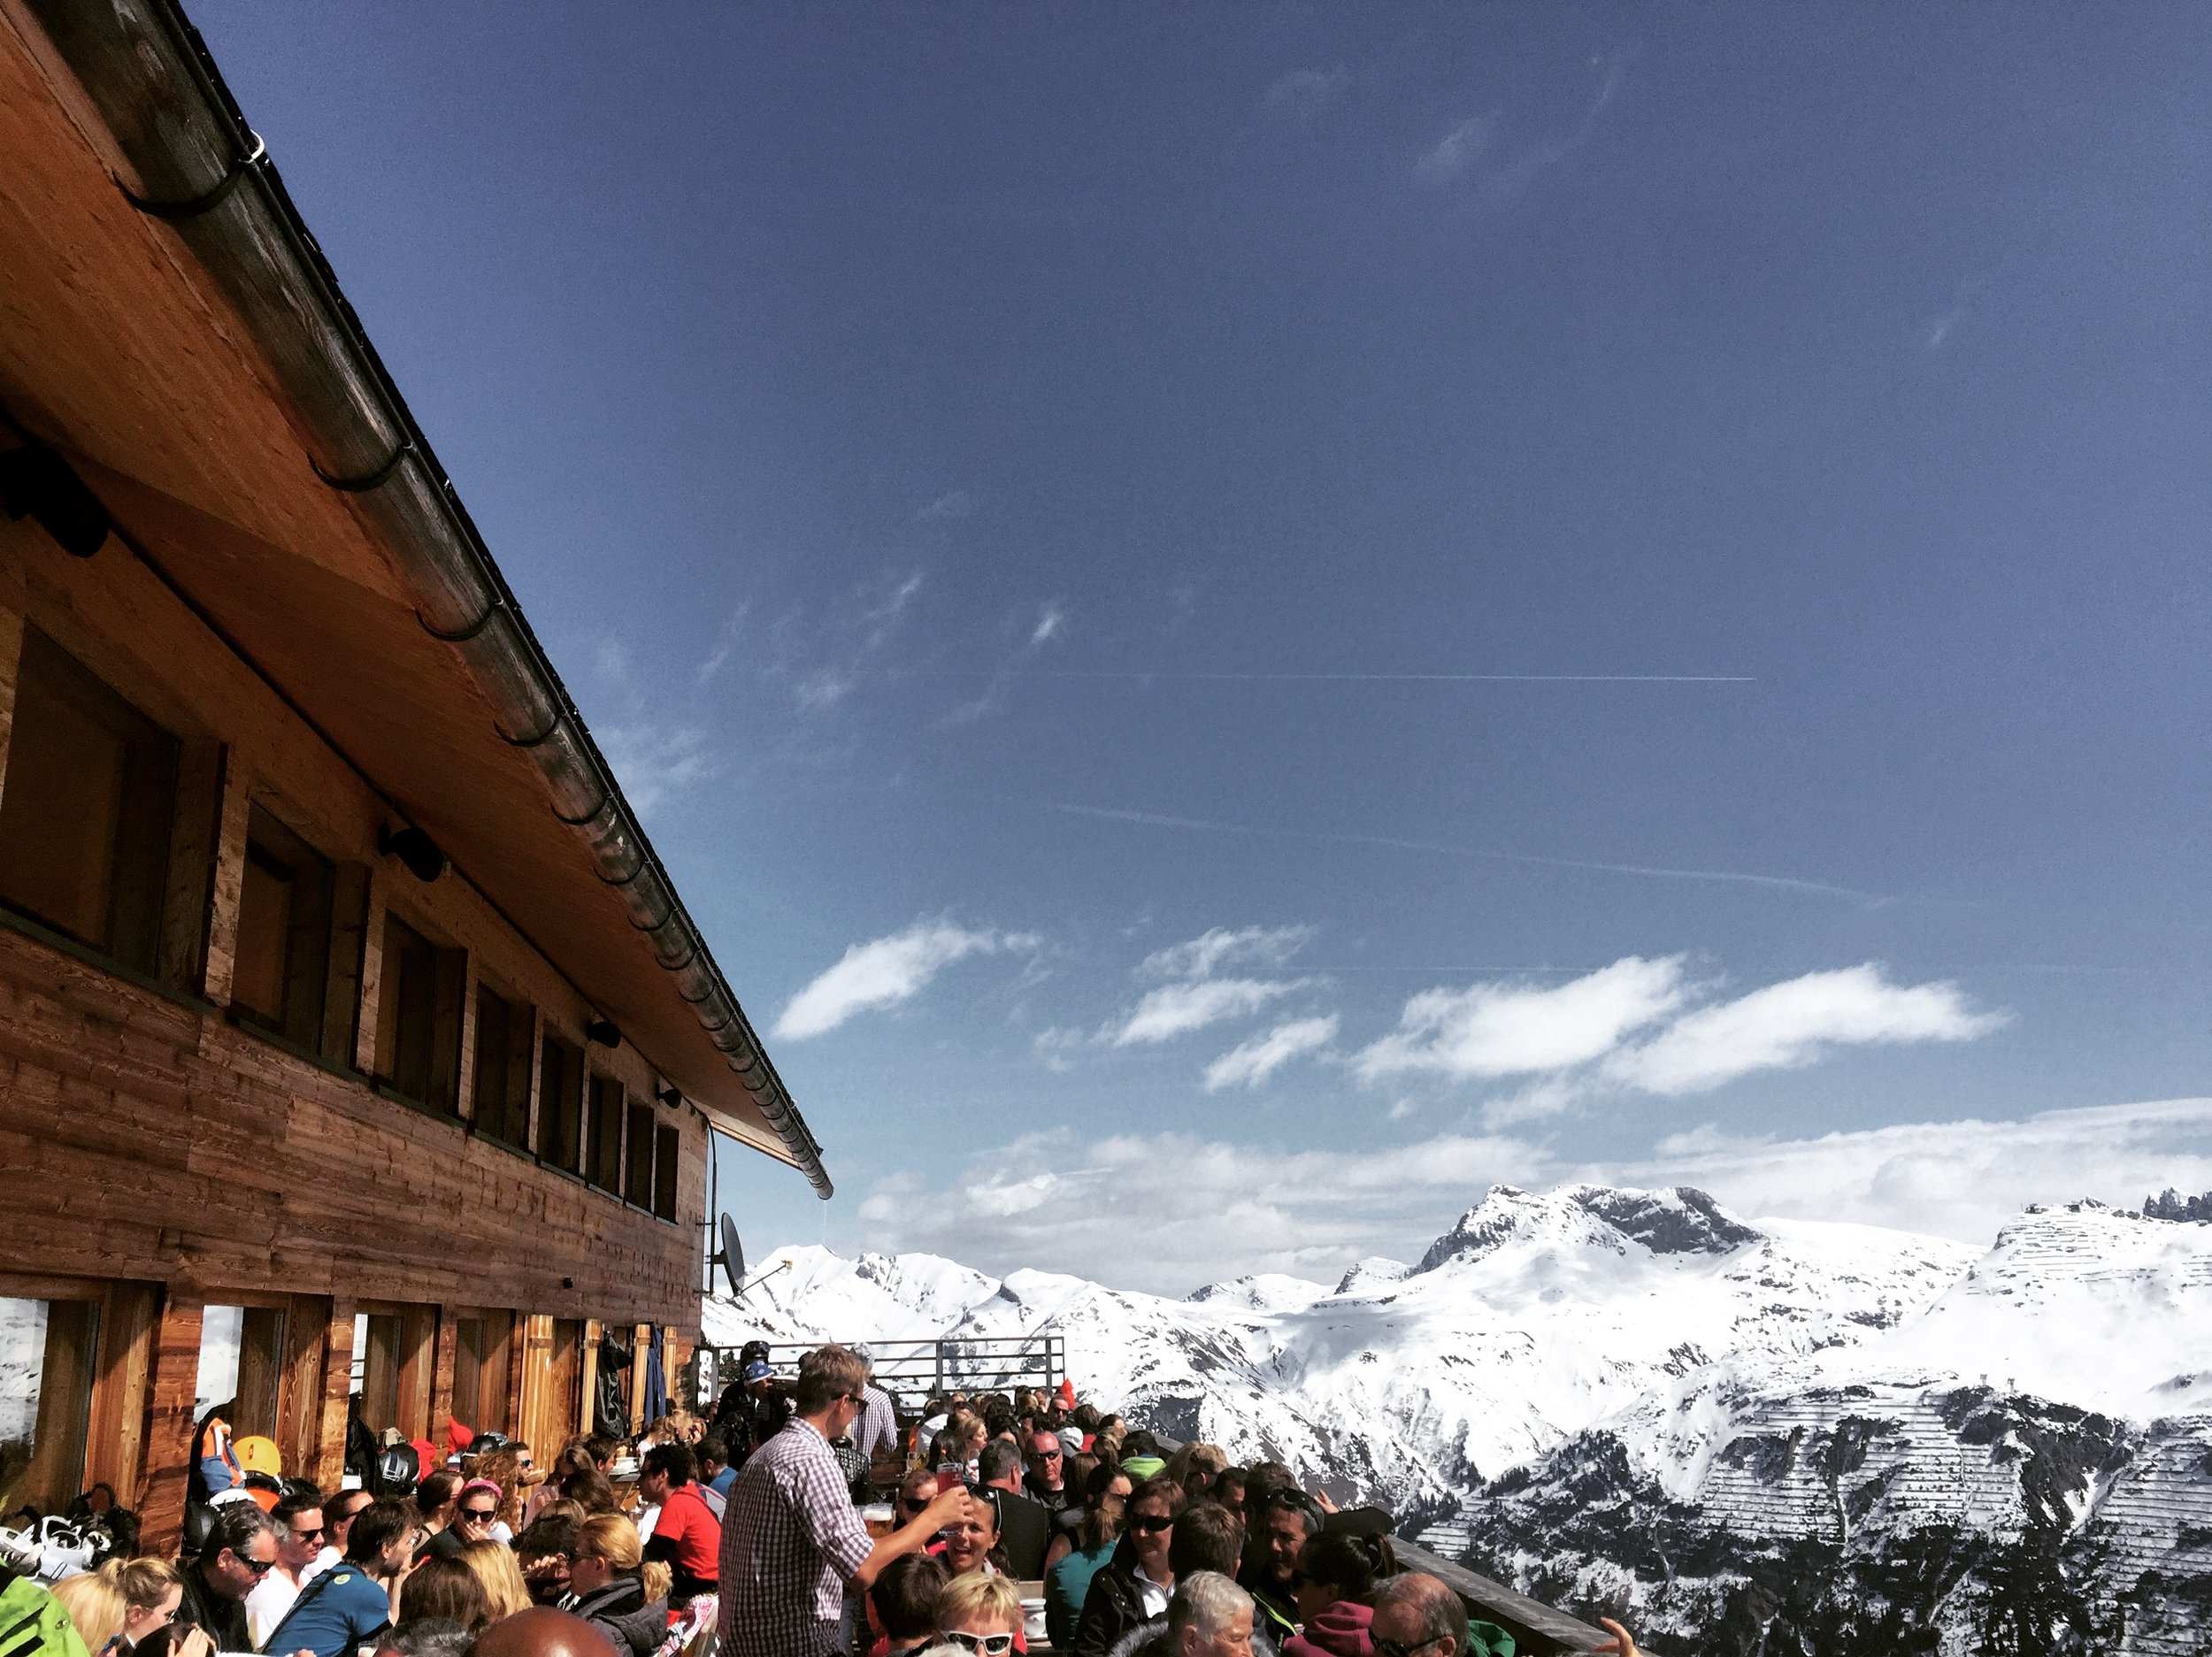 The outdoor sun terrace at Balmalp, Lech, Austria.